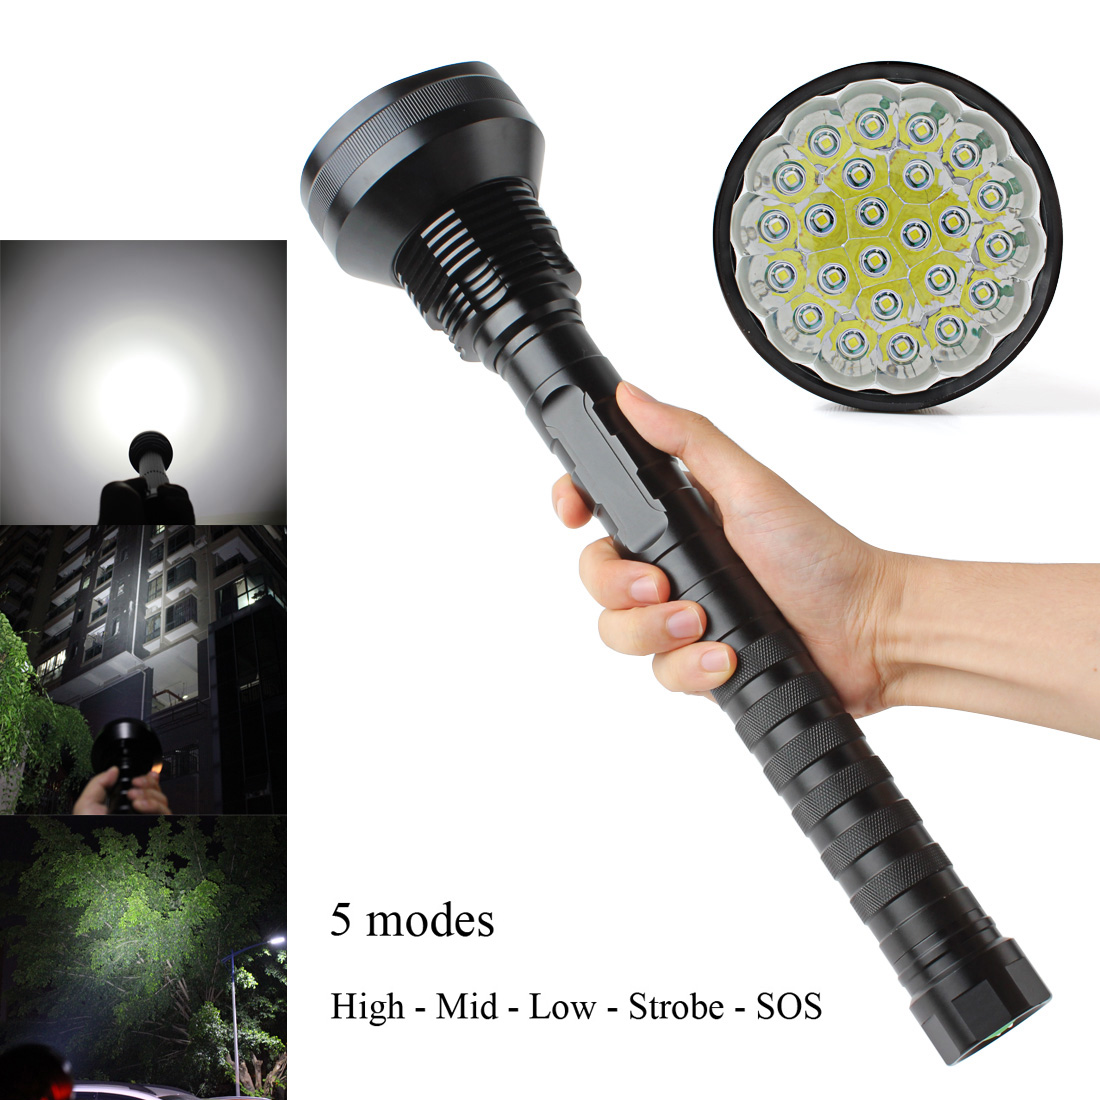 LED Flashlight NEW CREE XML-T6 21/24 LED 32000 LM High Power Glare T6 LED Torch Floodlight Accent Light Camping Lamp tinhofire t3 t4 t5 t6 t7 t8 t9 t10 t11 t12 cree t6 led 4000 20000 lm led torch camping flashlight lamp with battery and charger